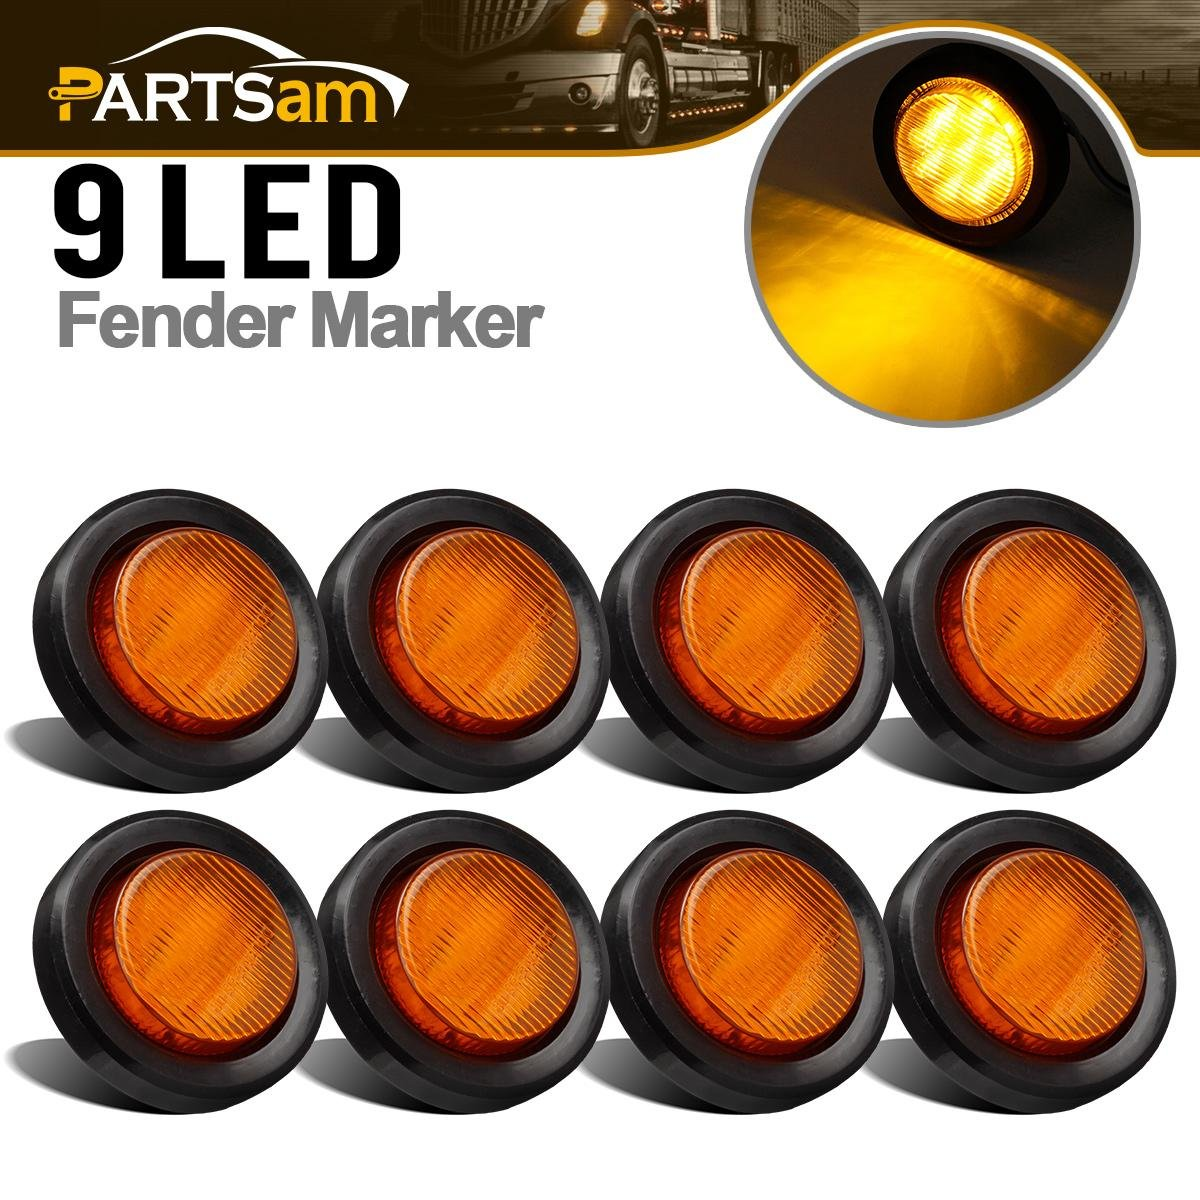 Partsam 8pcs 2 Side Marker Clearance Amber light 9 LEDs With Standard 2 Pins